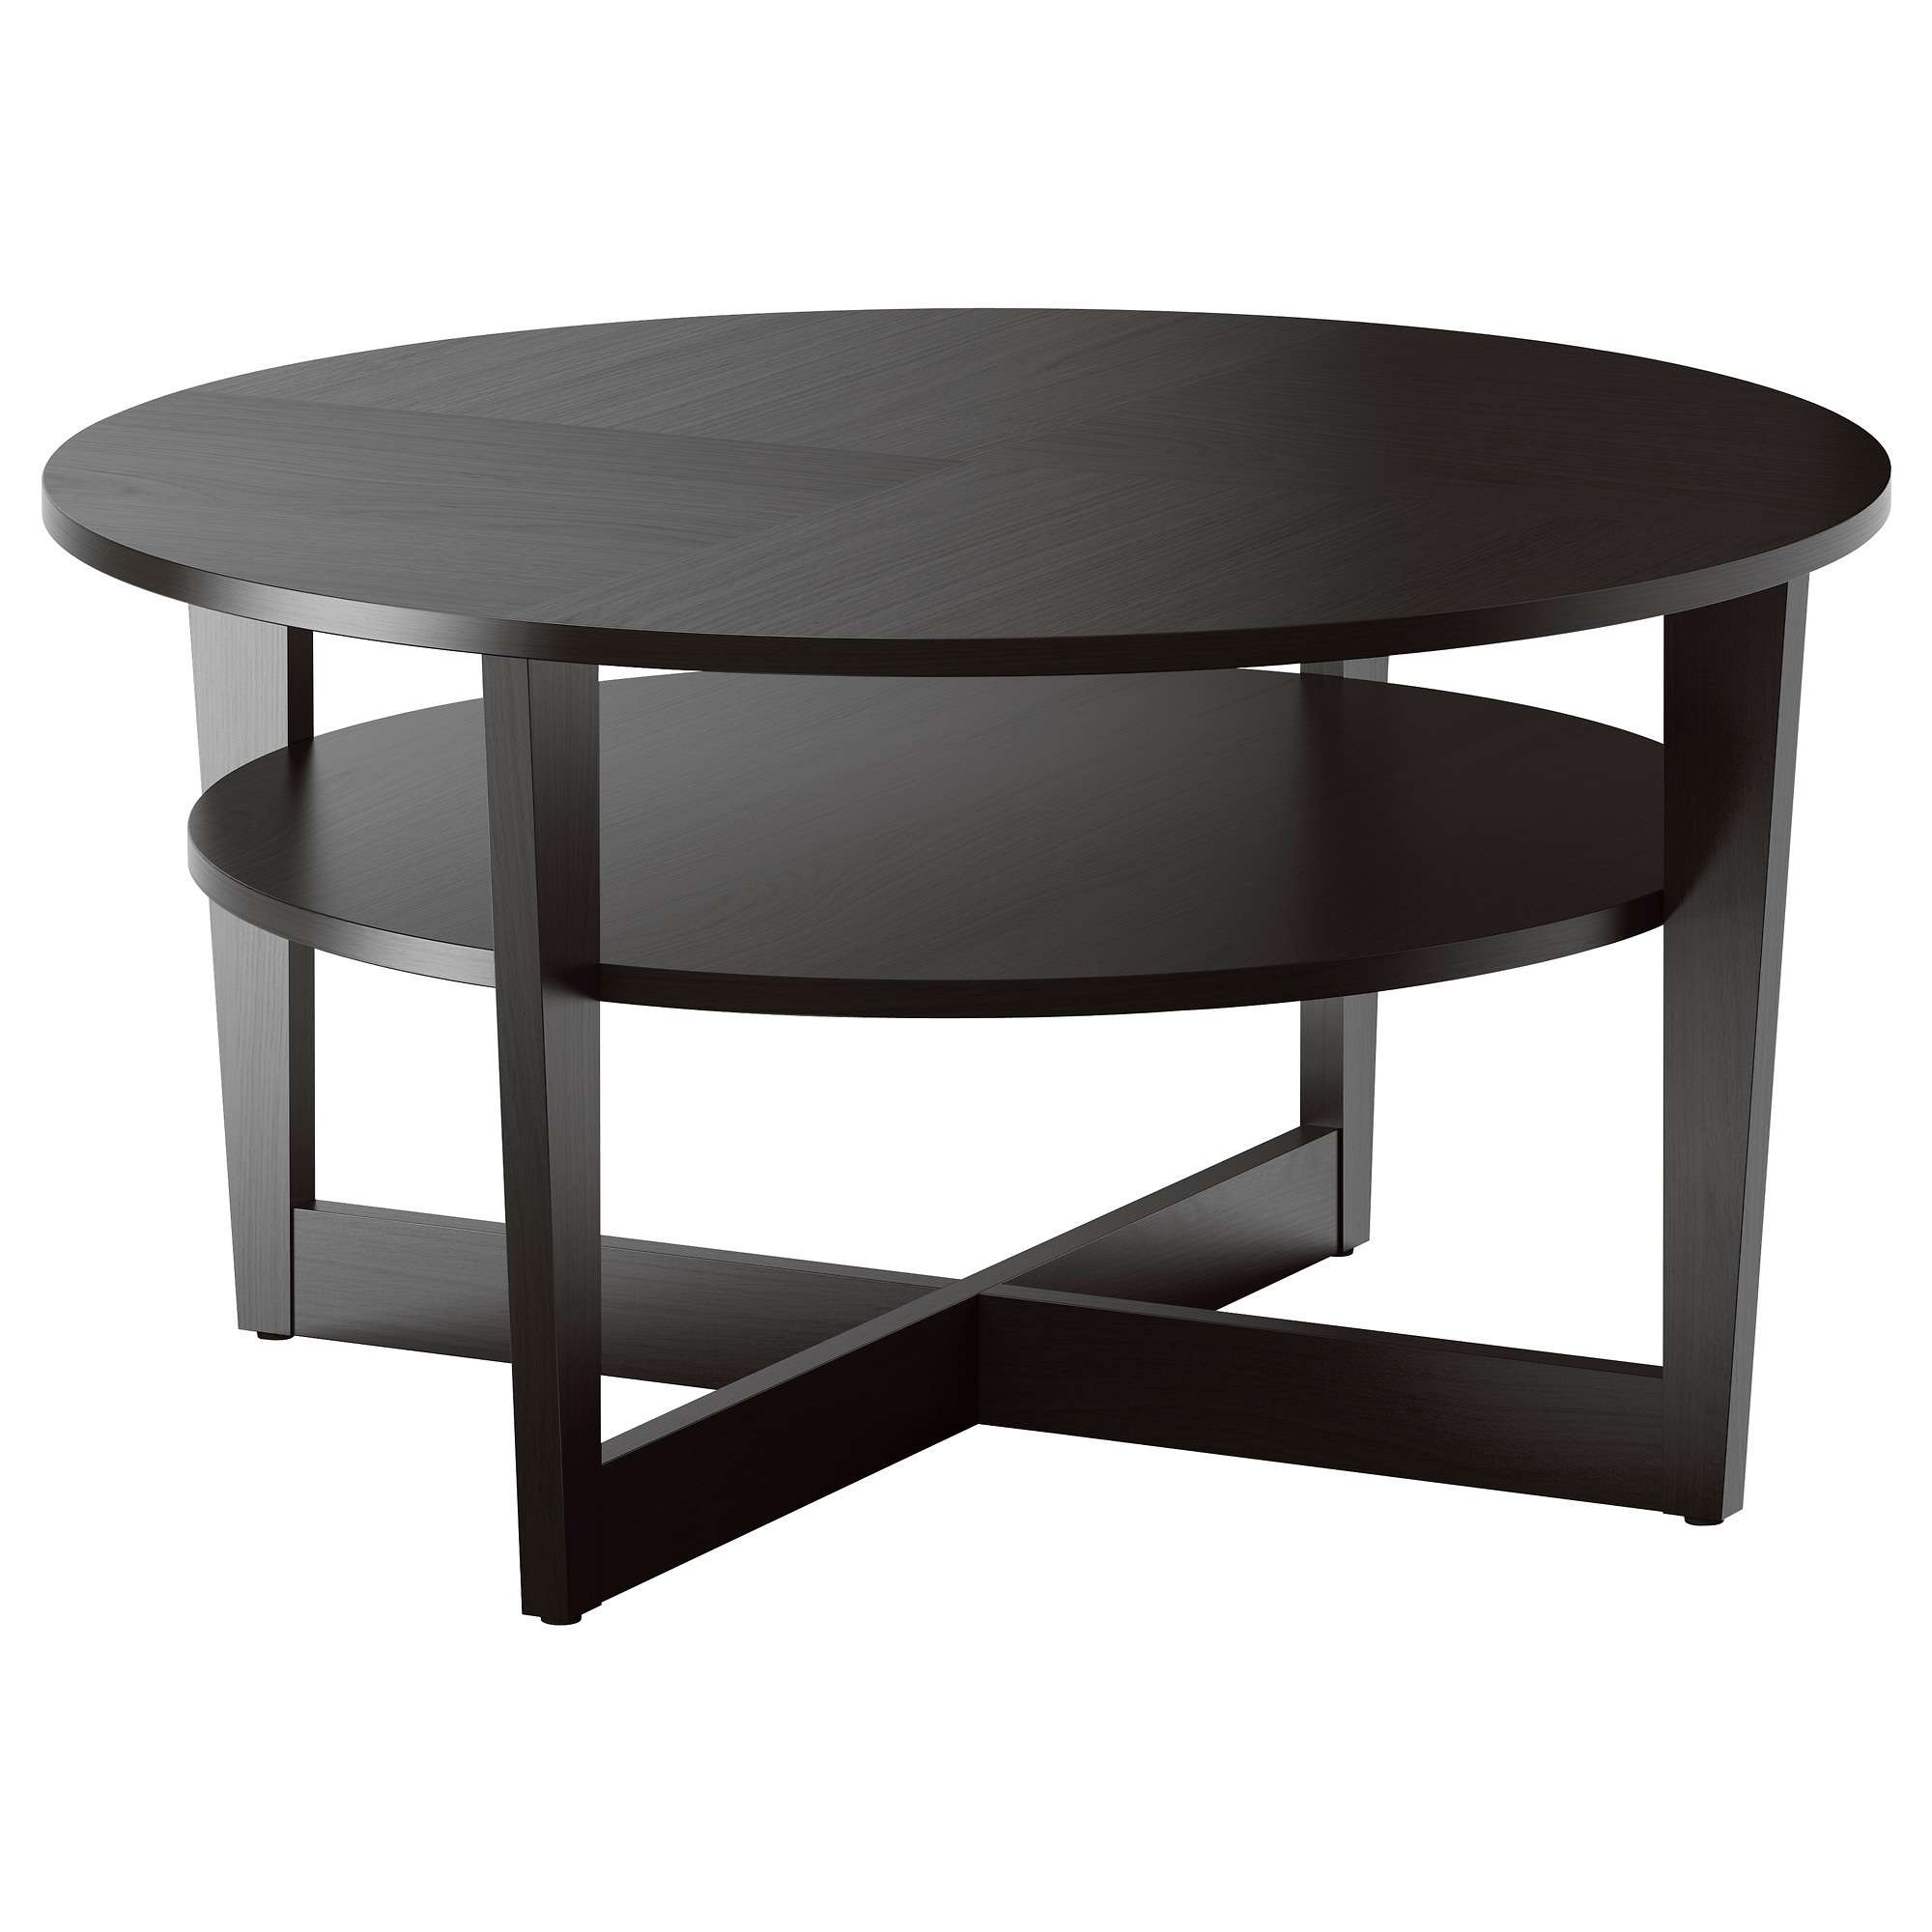 Recent Round High Gloss Coffee Tables Regarding Round Coffee Table: Captivating Round High Gloss Coffee Table (View 13 of 20)